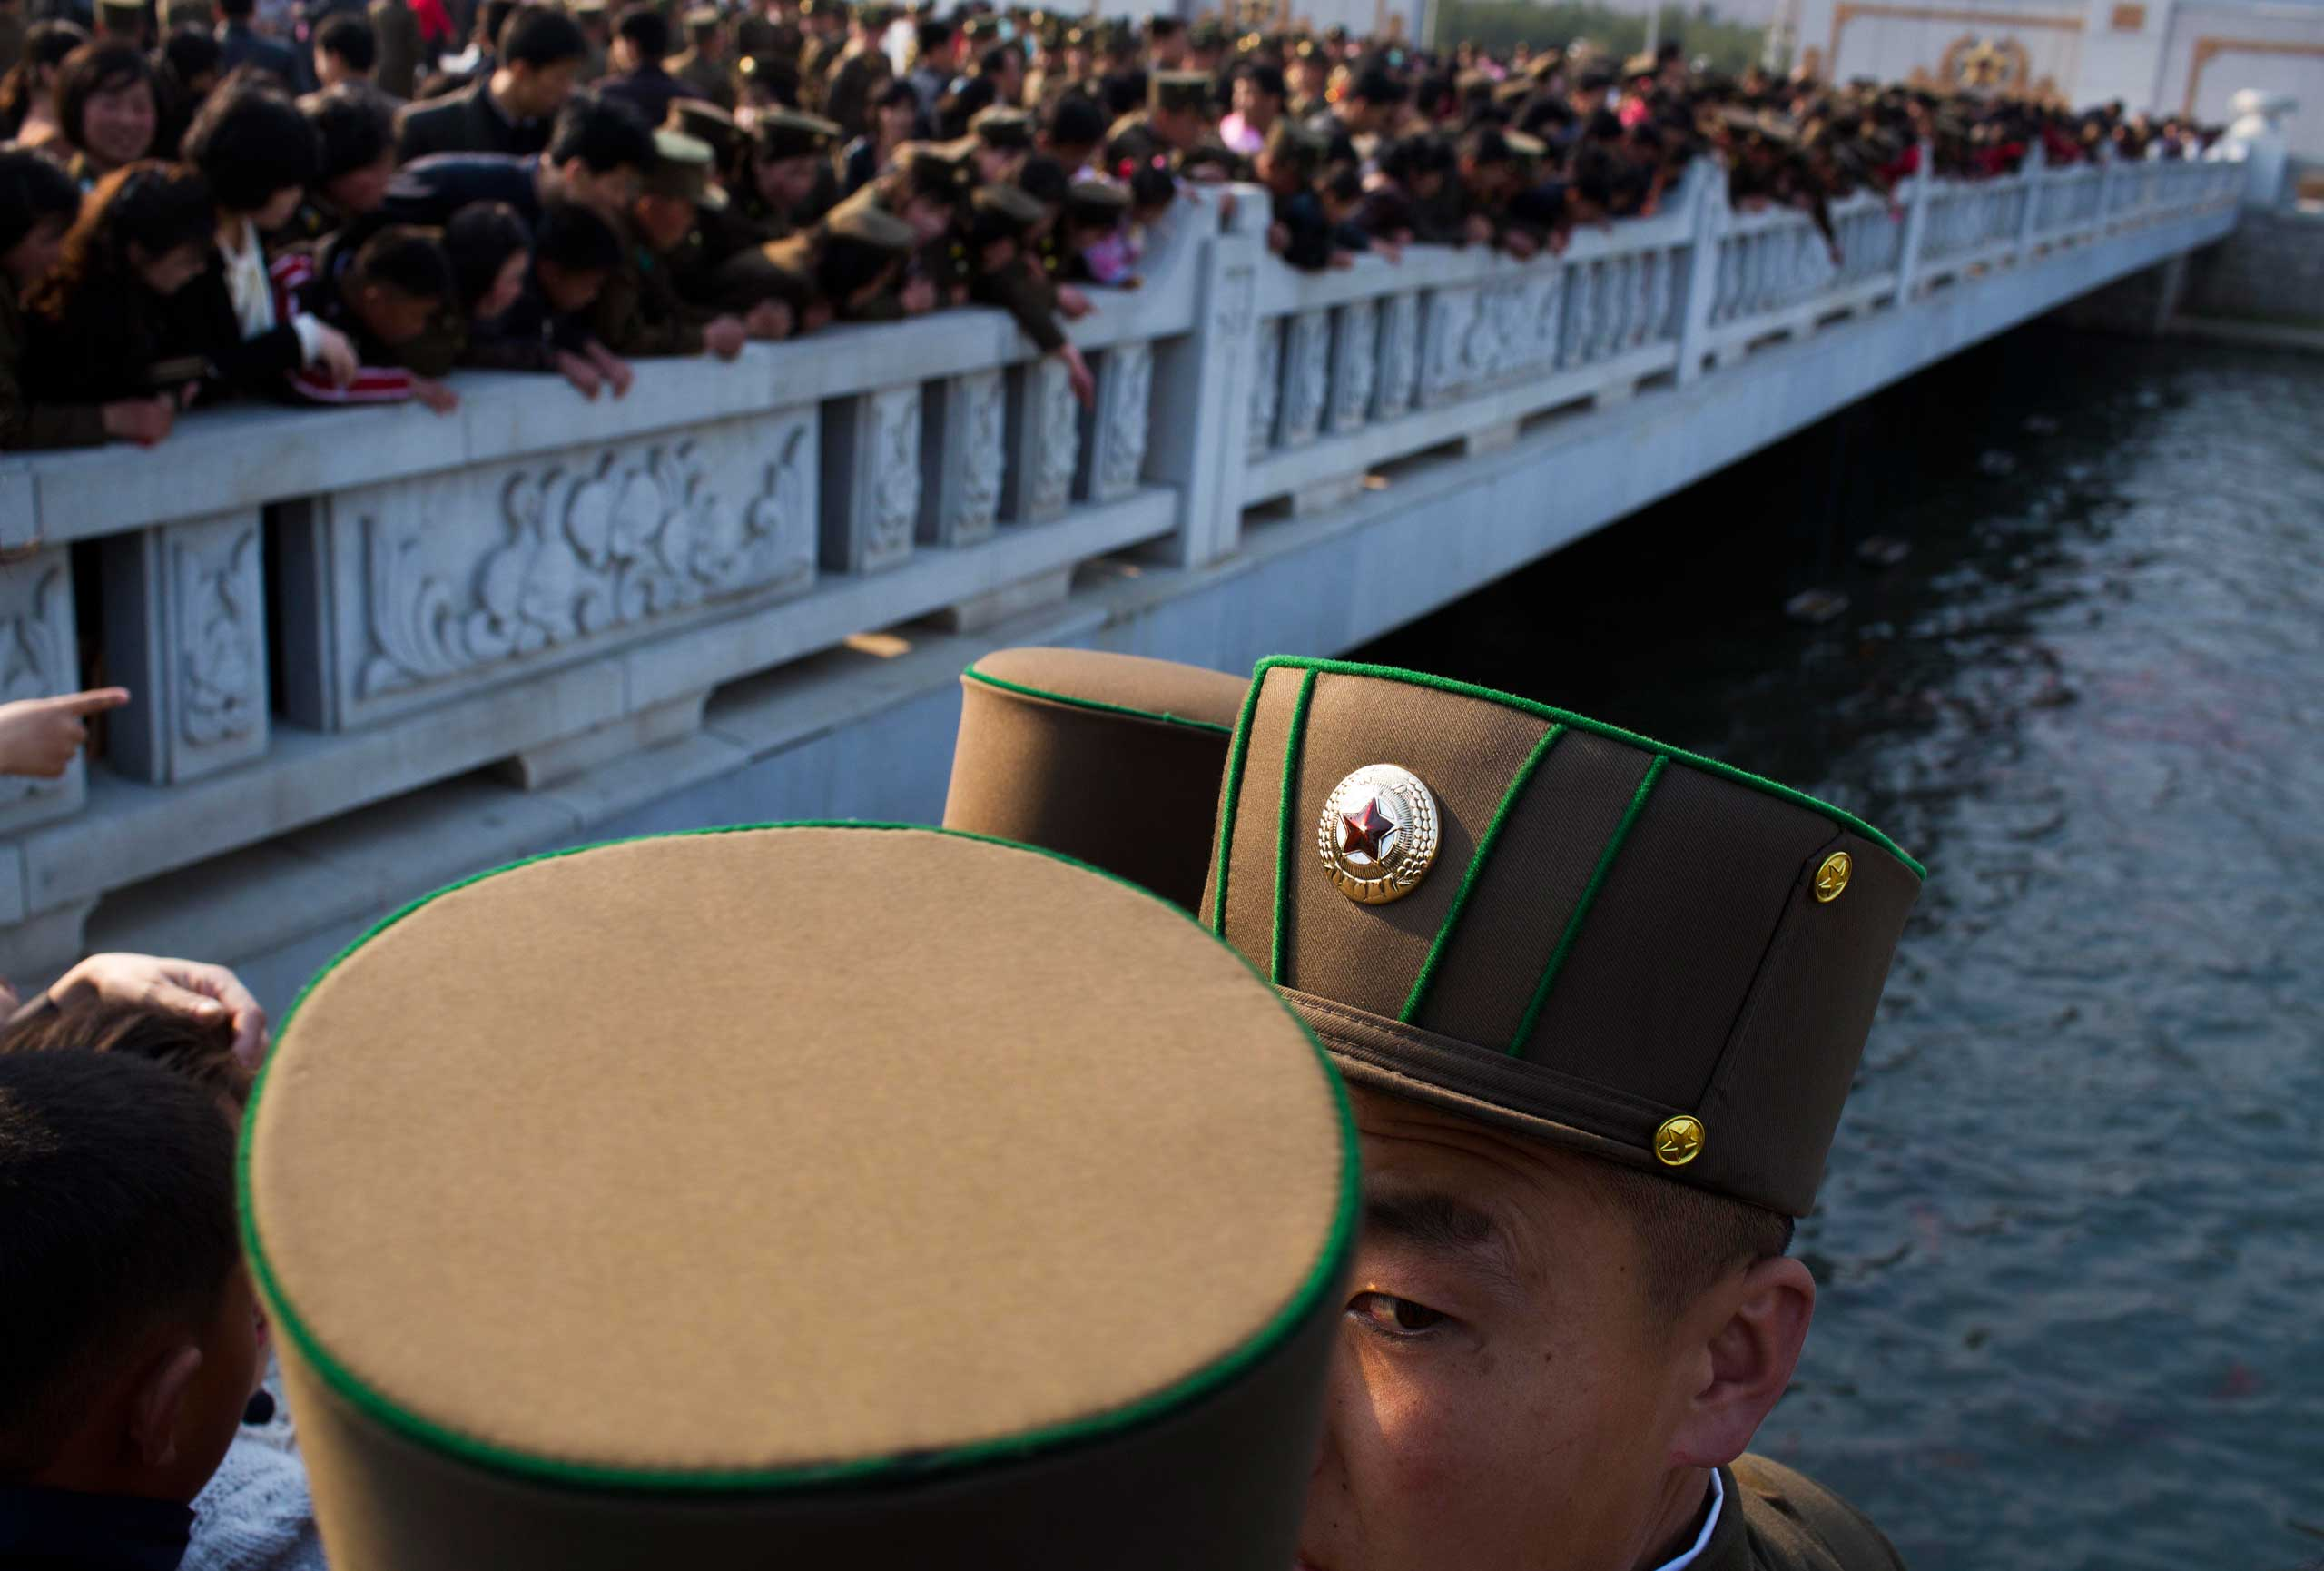 April 25, 2013. North Korean soldiers and civilians stand on a foot bridge to look at goldfish in a moat as they tour the grounds of Kumsusan Palace of the Sun, the mausoleum where the bodies of the late leaders Kim Il Sung and Kim Jong Il lie embalmed, in Pyongyang, North Korea.